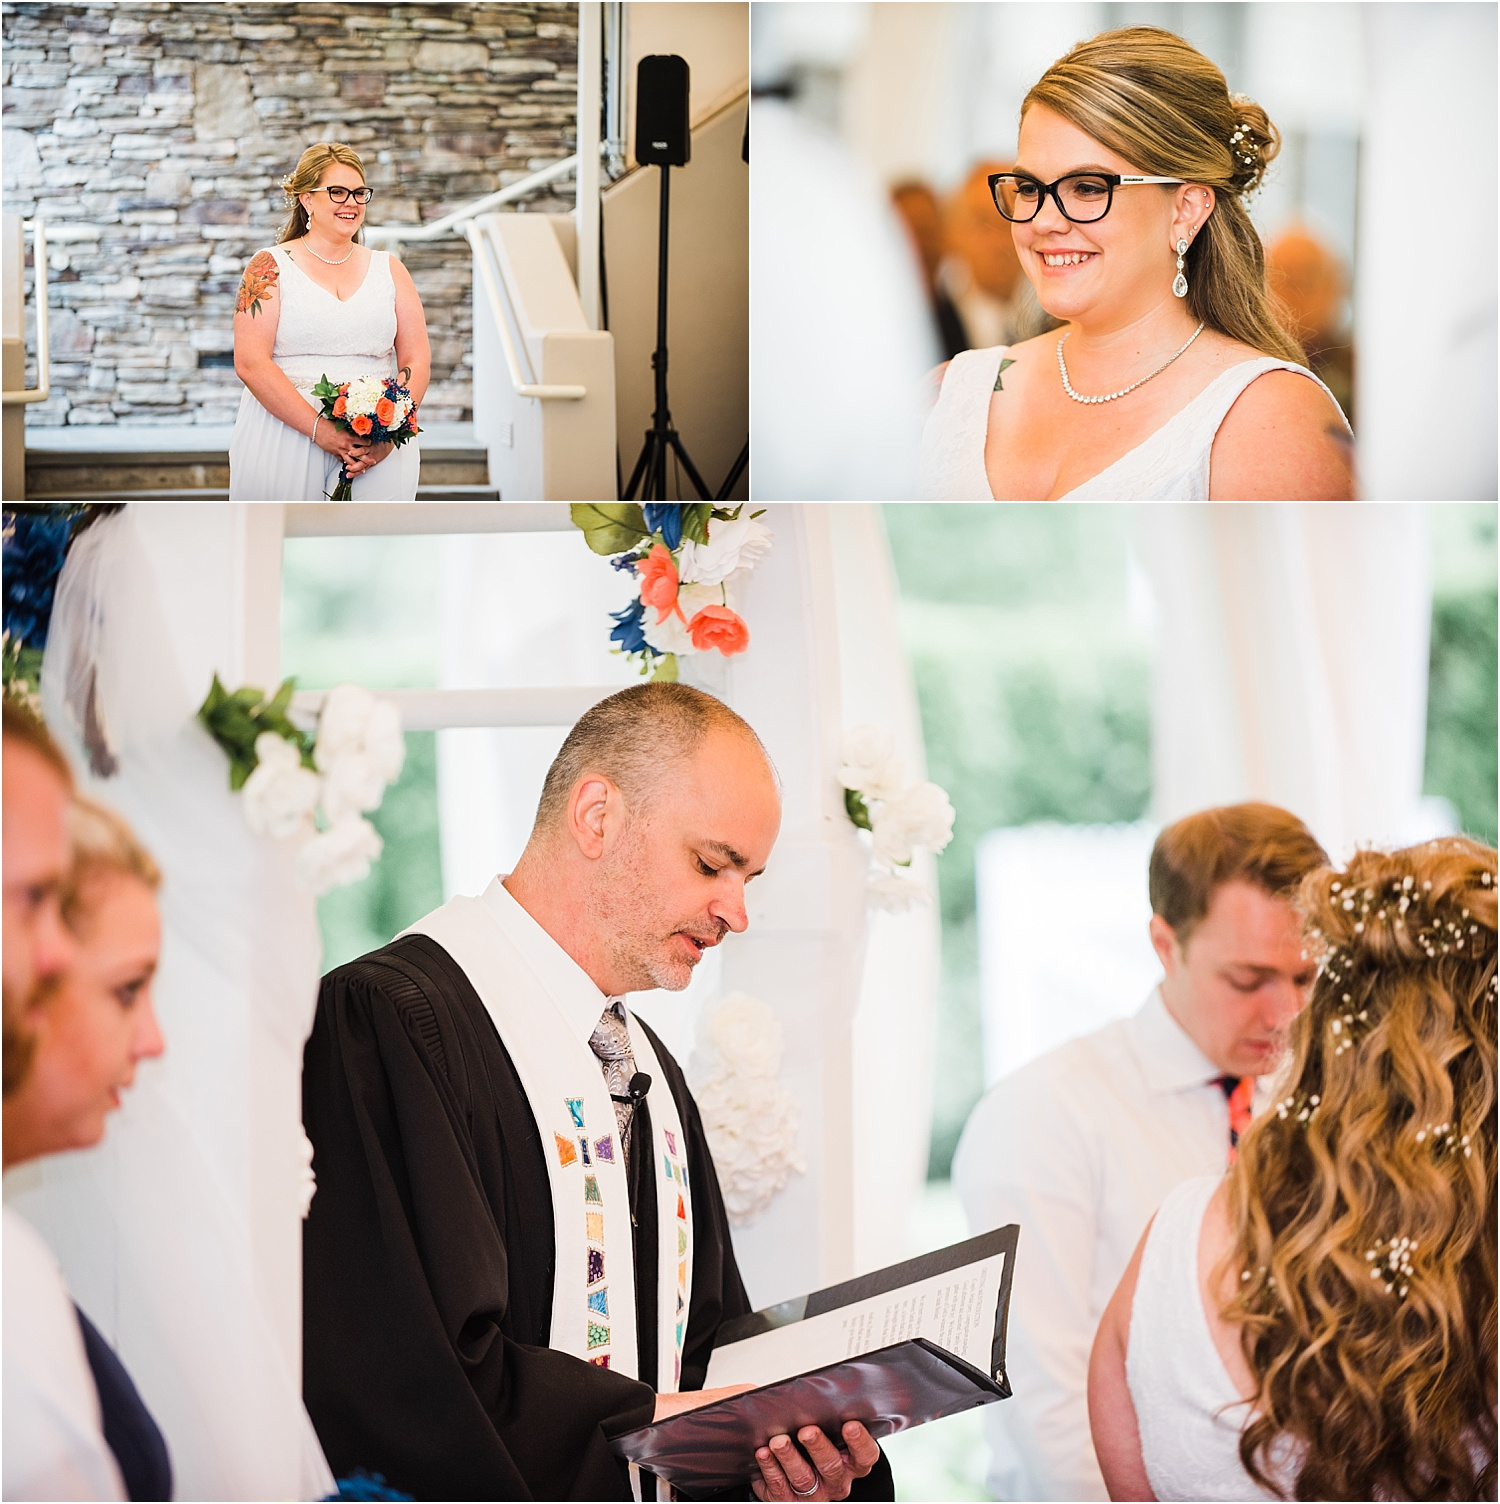 The_Riverview_Simsbury_Connecticut_Wedding_LGBT_Weddings_026.jpg